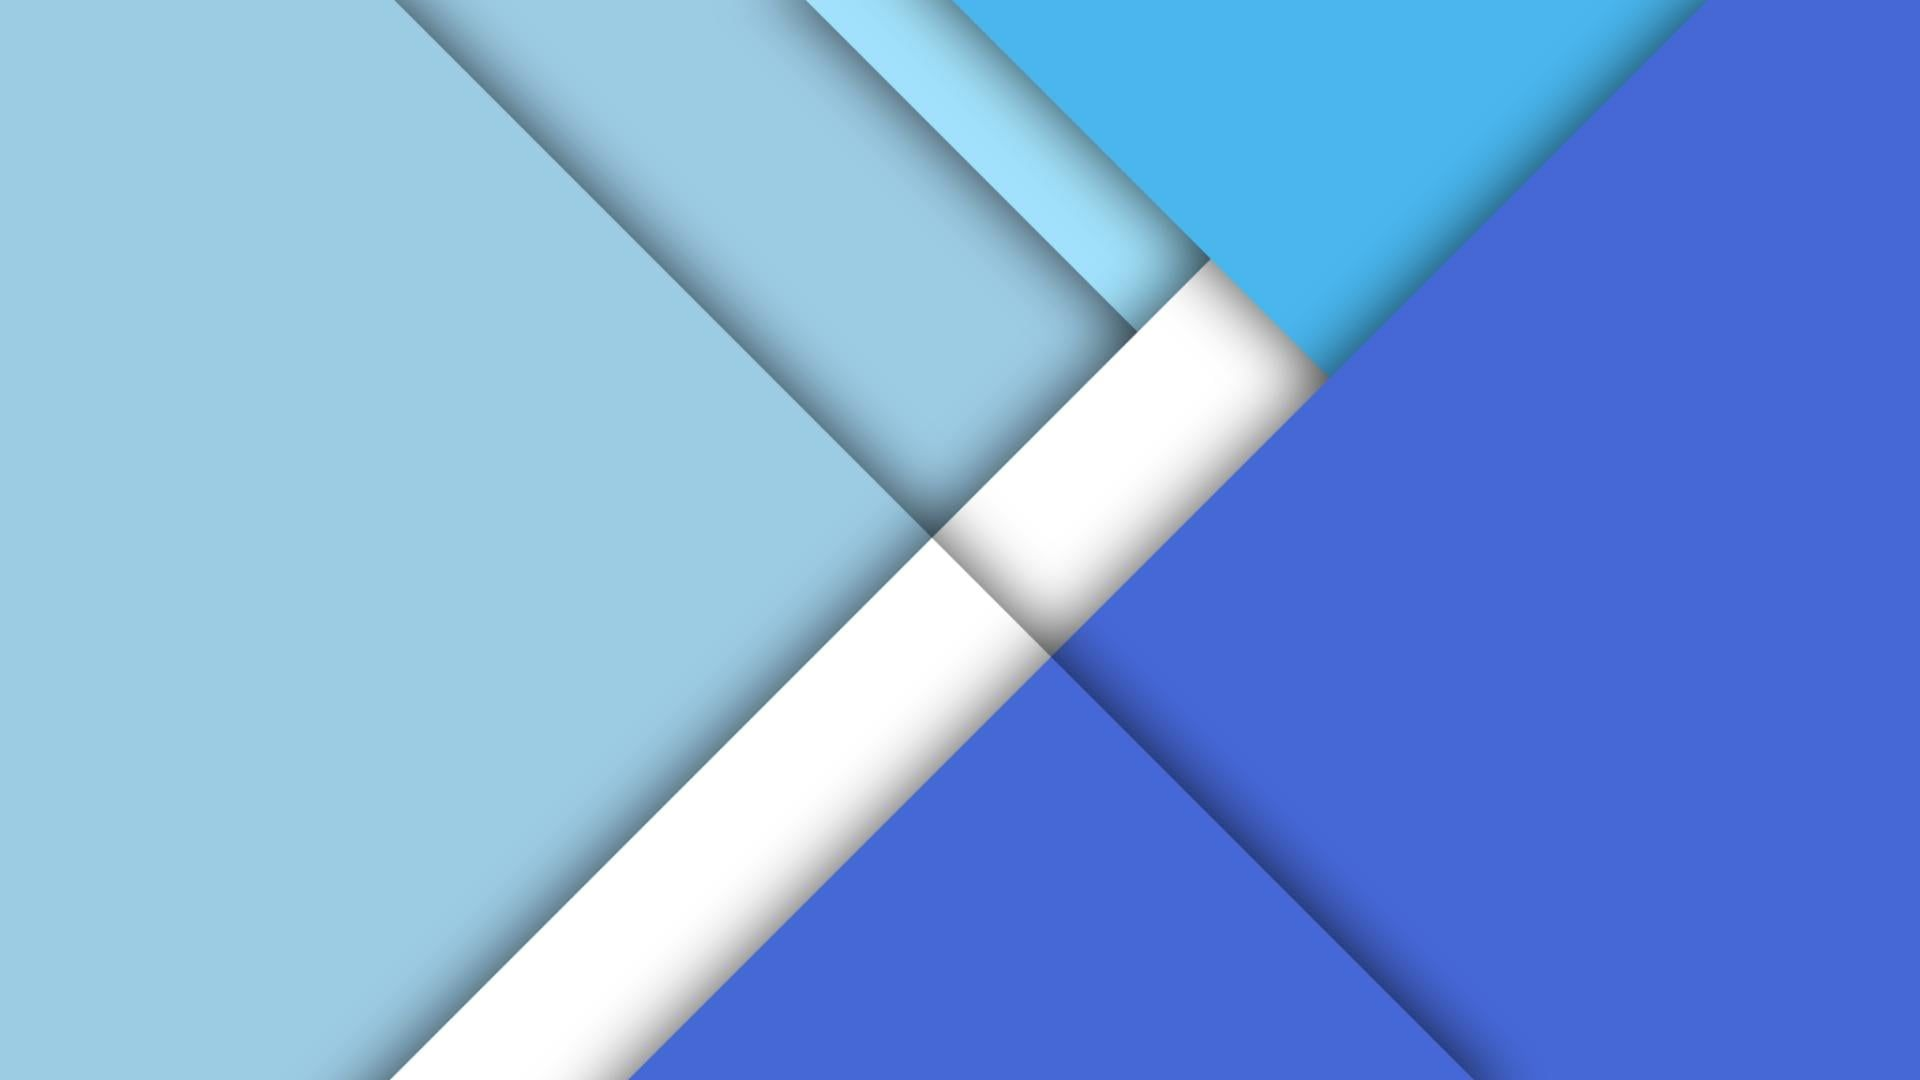 Blue White Material Design Minimal Art Material Minimalist 1080p Wallpaper Hdwallpaper Des Blue Background Wallpapers Blue Wallpapers Background Design